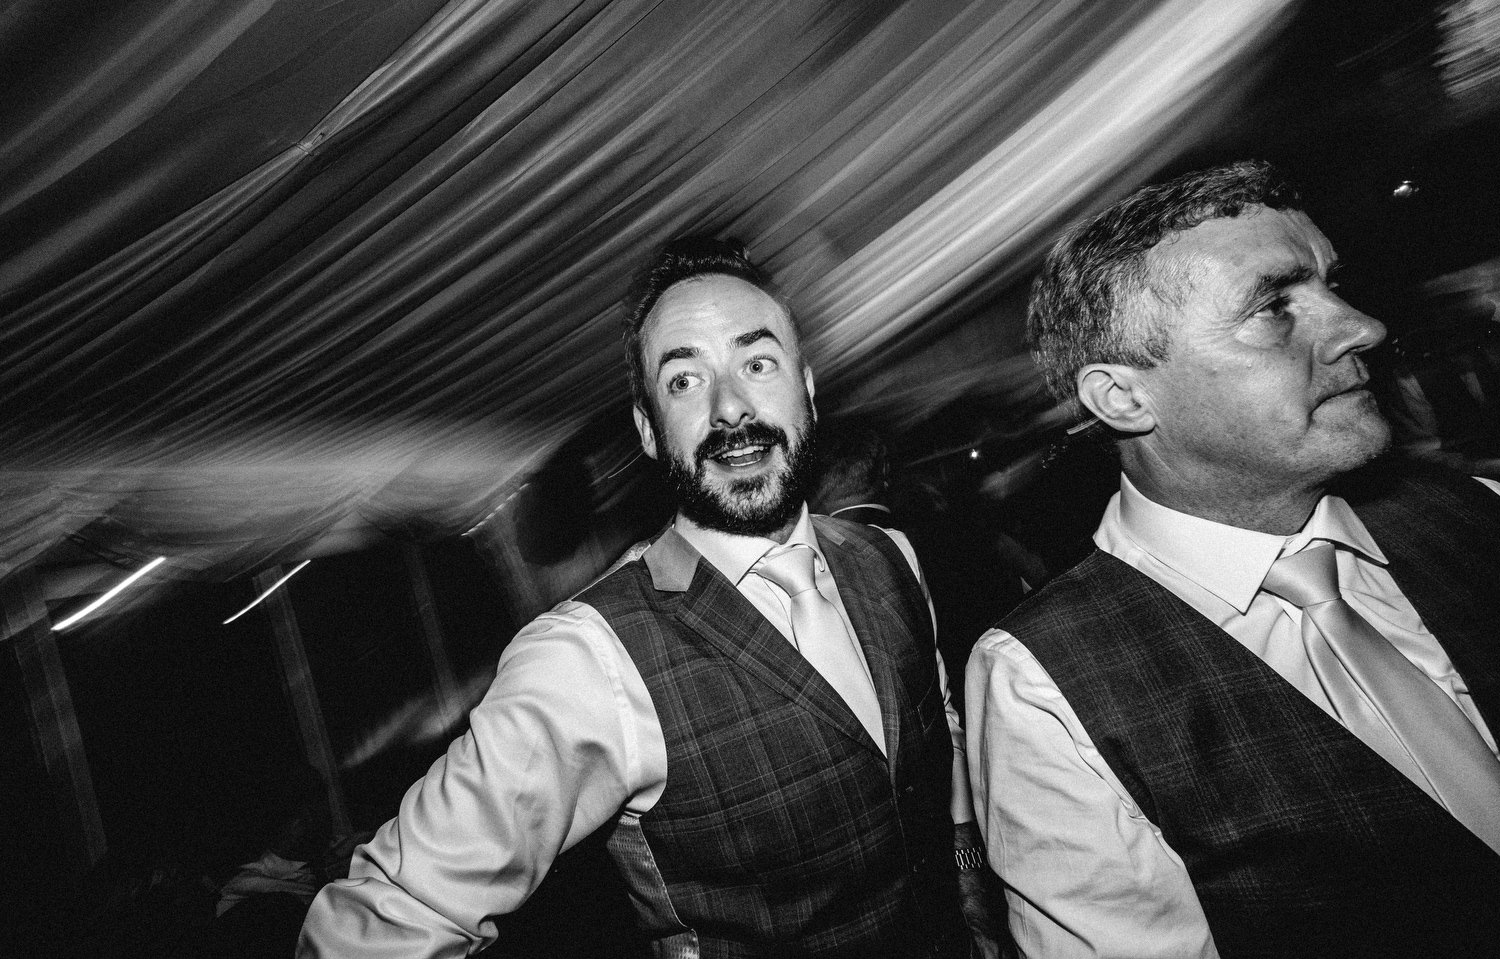 weding dance at ballybeg david mcclelland photography